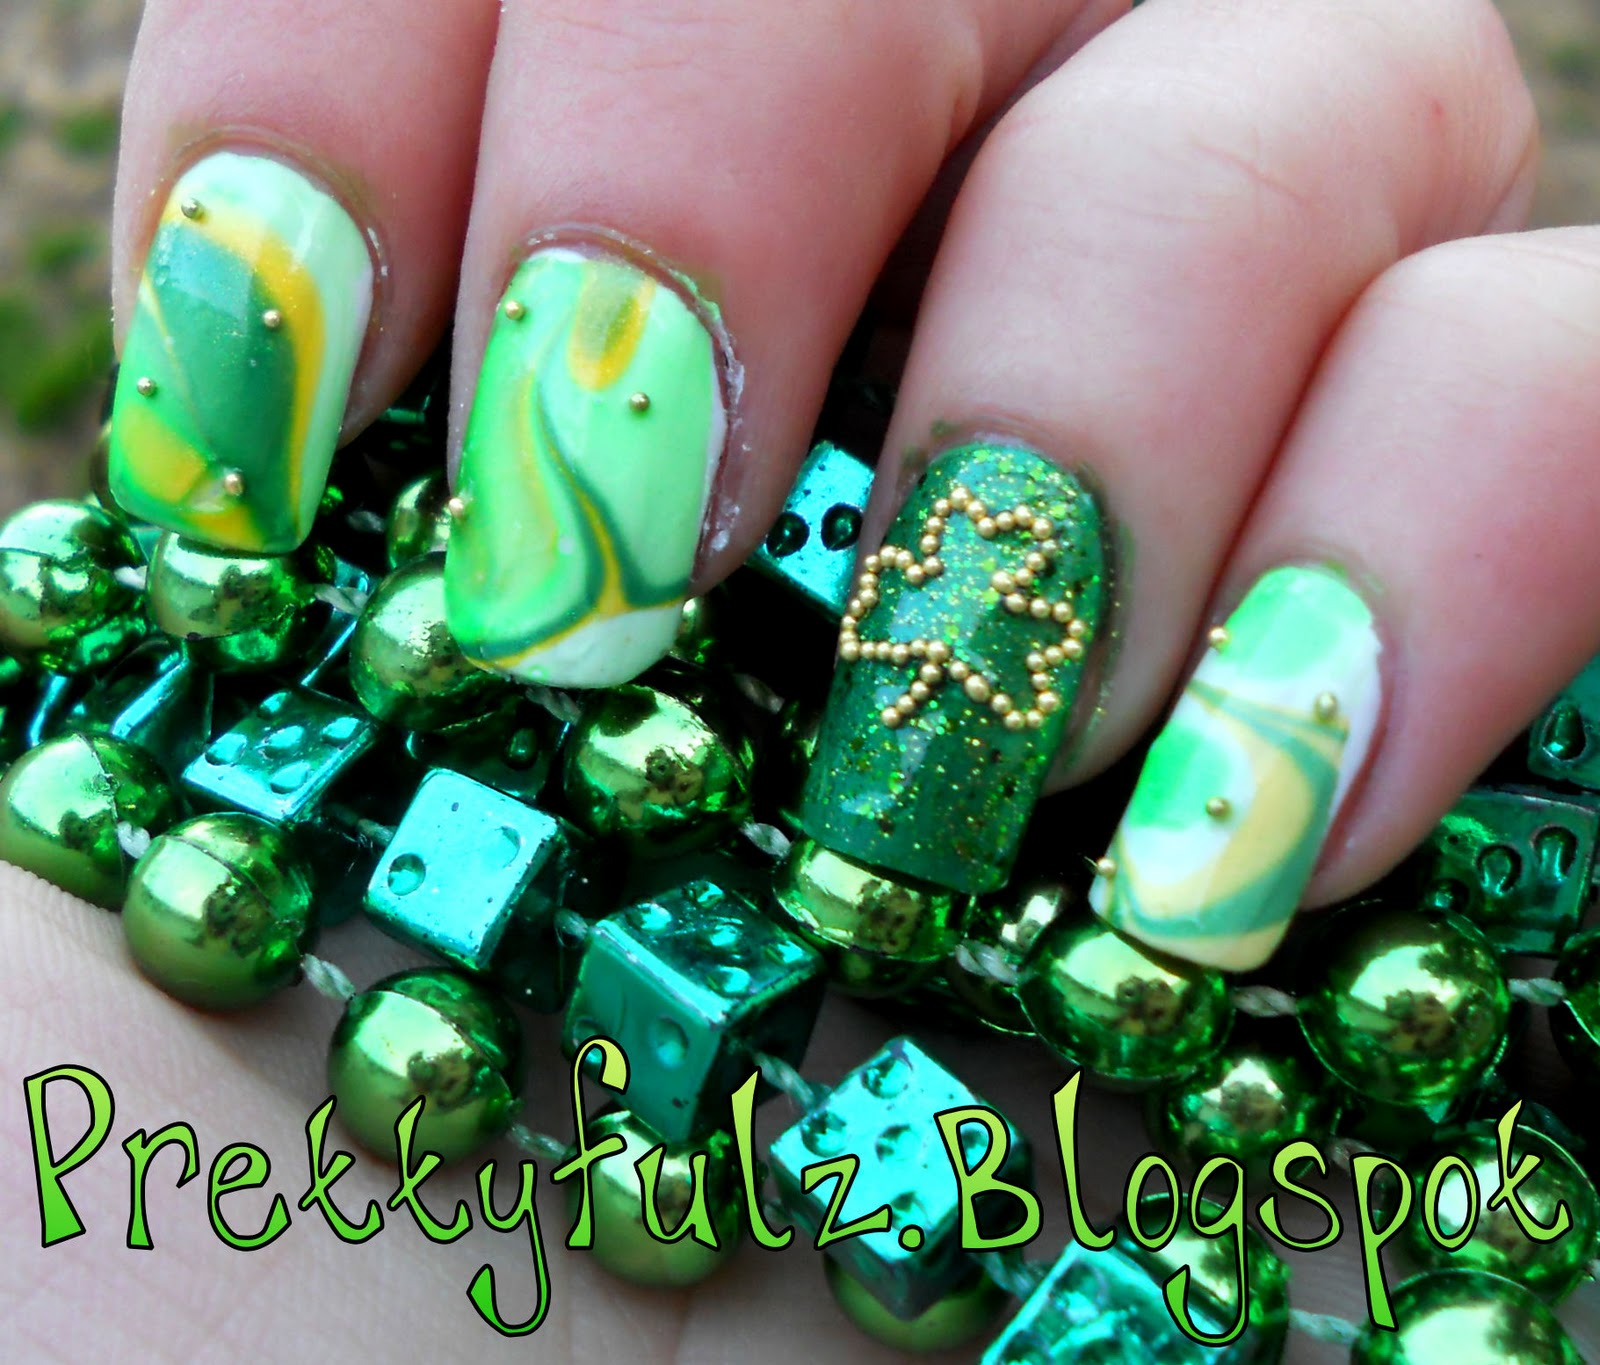 Prettyfulz Fall Nail Art Design 2011: Prettyfulz: St. Patrick's Day Nail Art Design